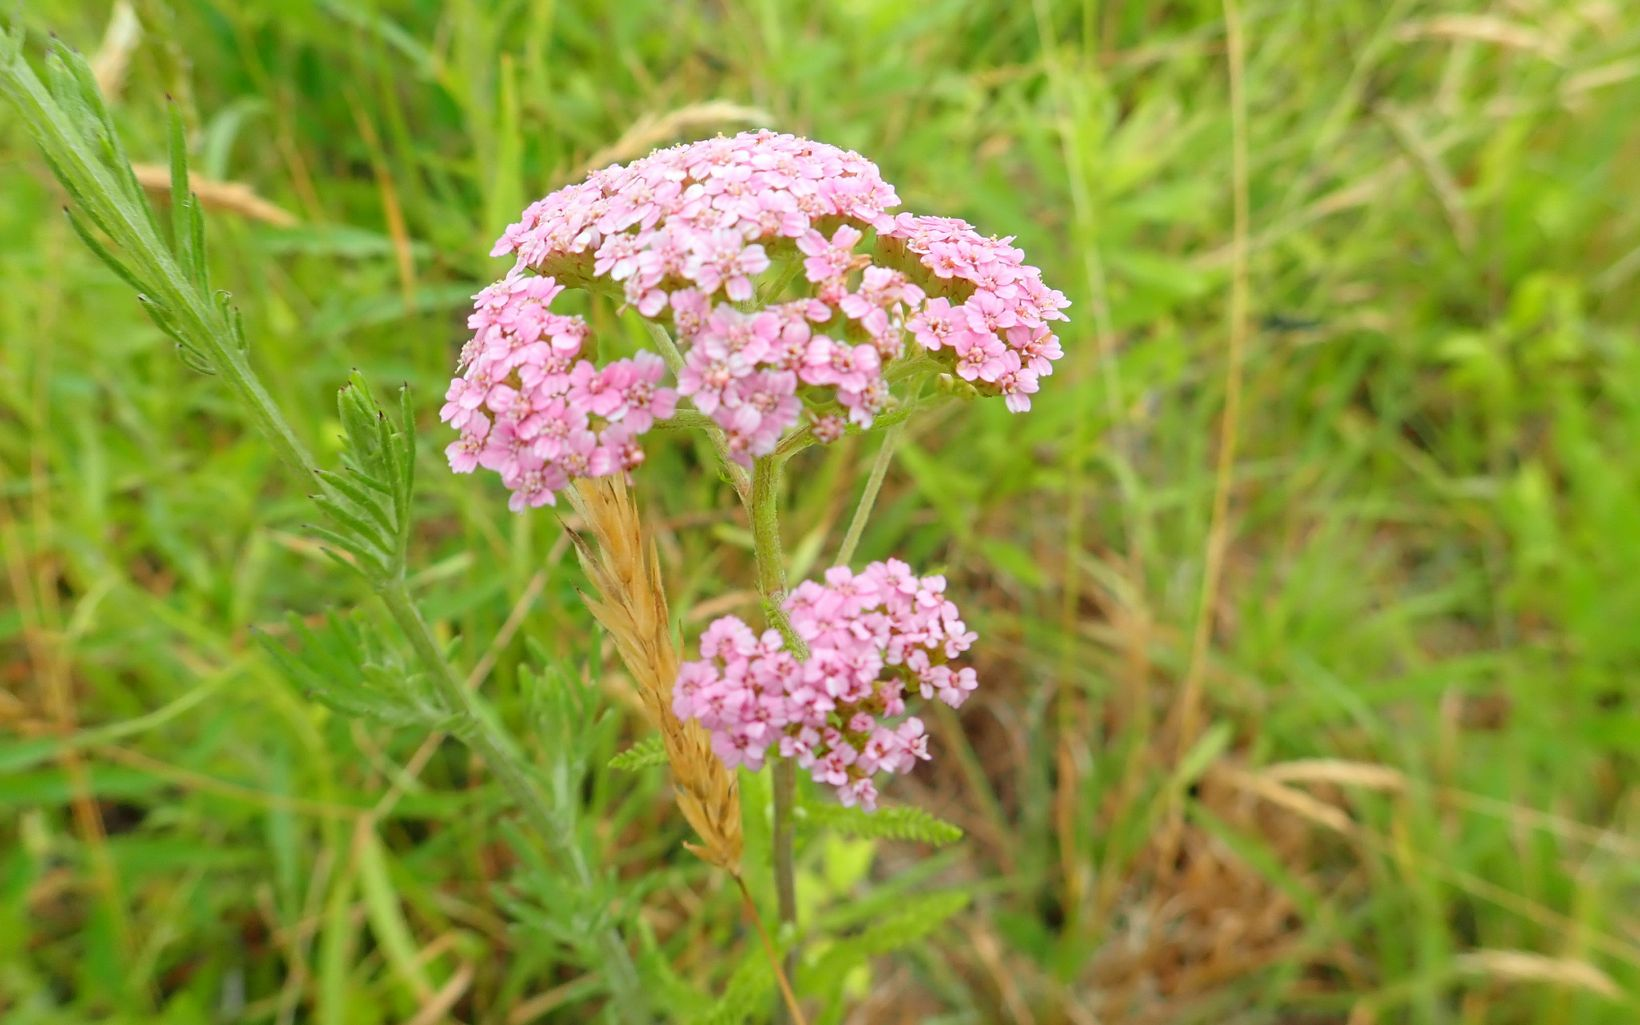 A plant with clusters of small pink flowers.